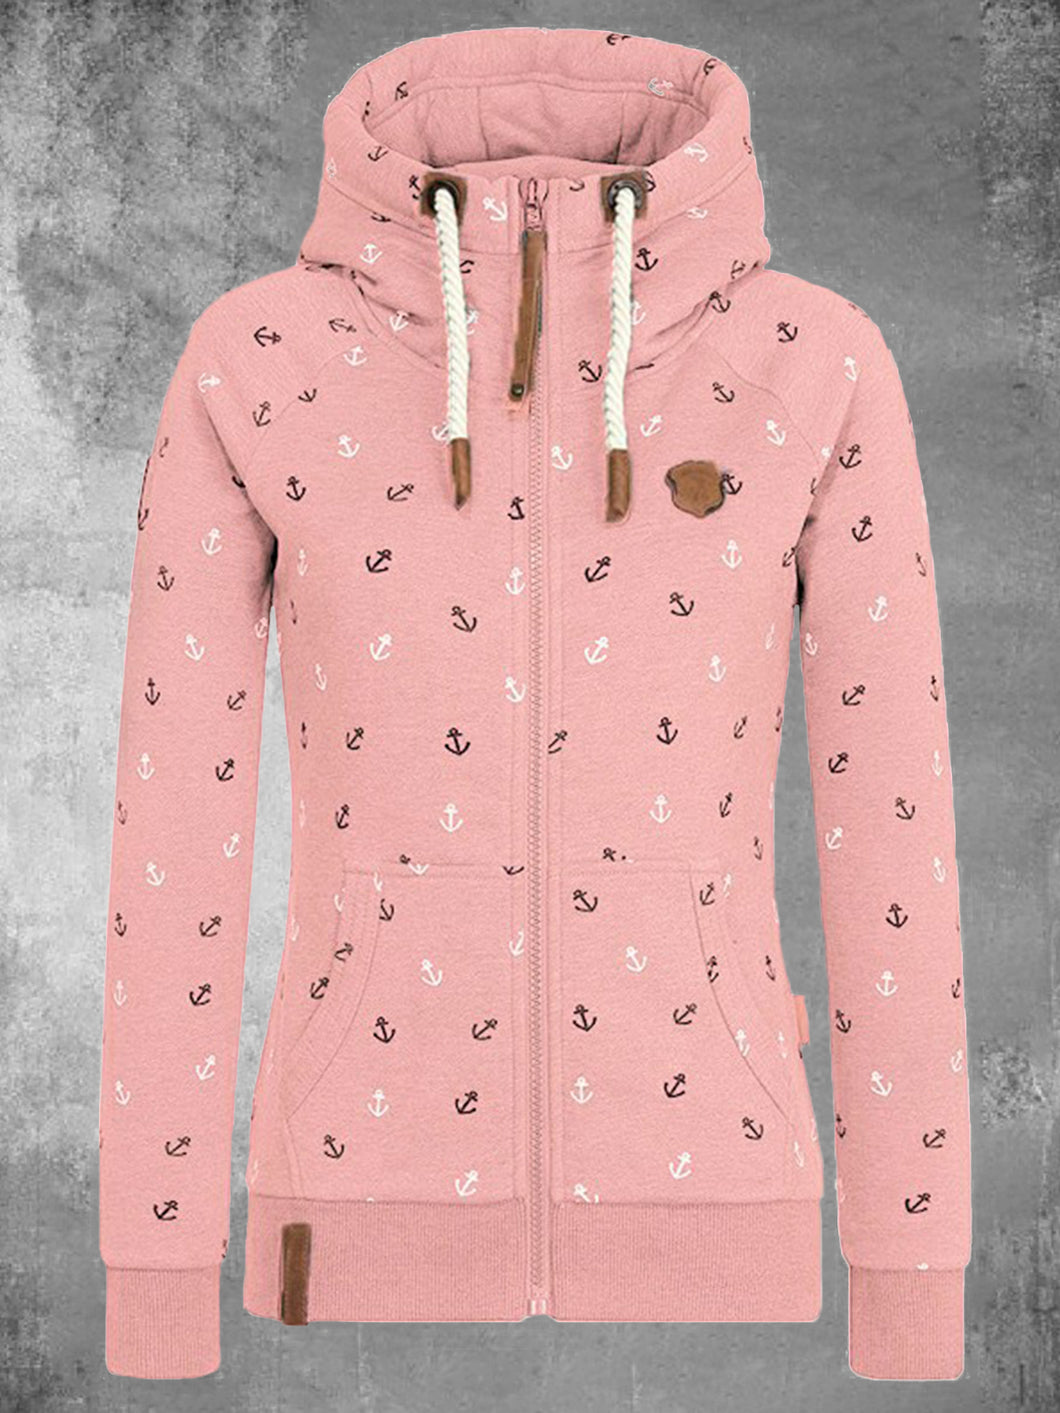 Zip Hoodie Long Sleeve Pockets Hooded Cardigan Sweatshirts Floral Print Sweatshirts For Women